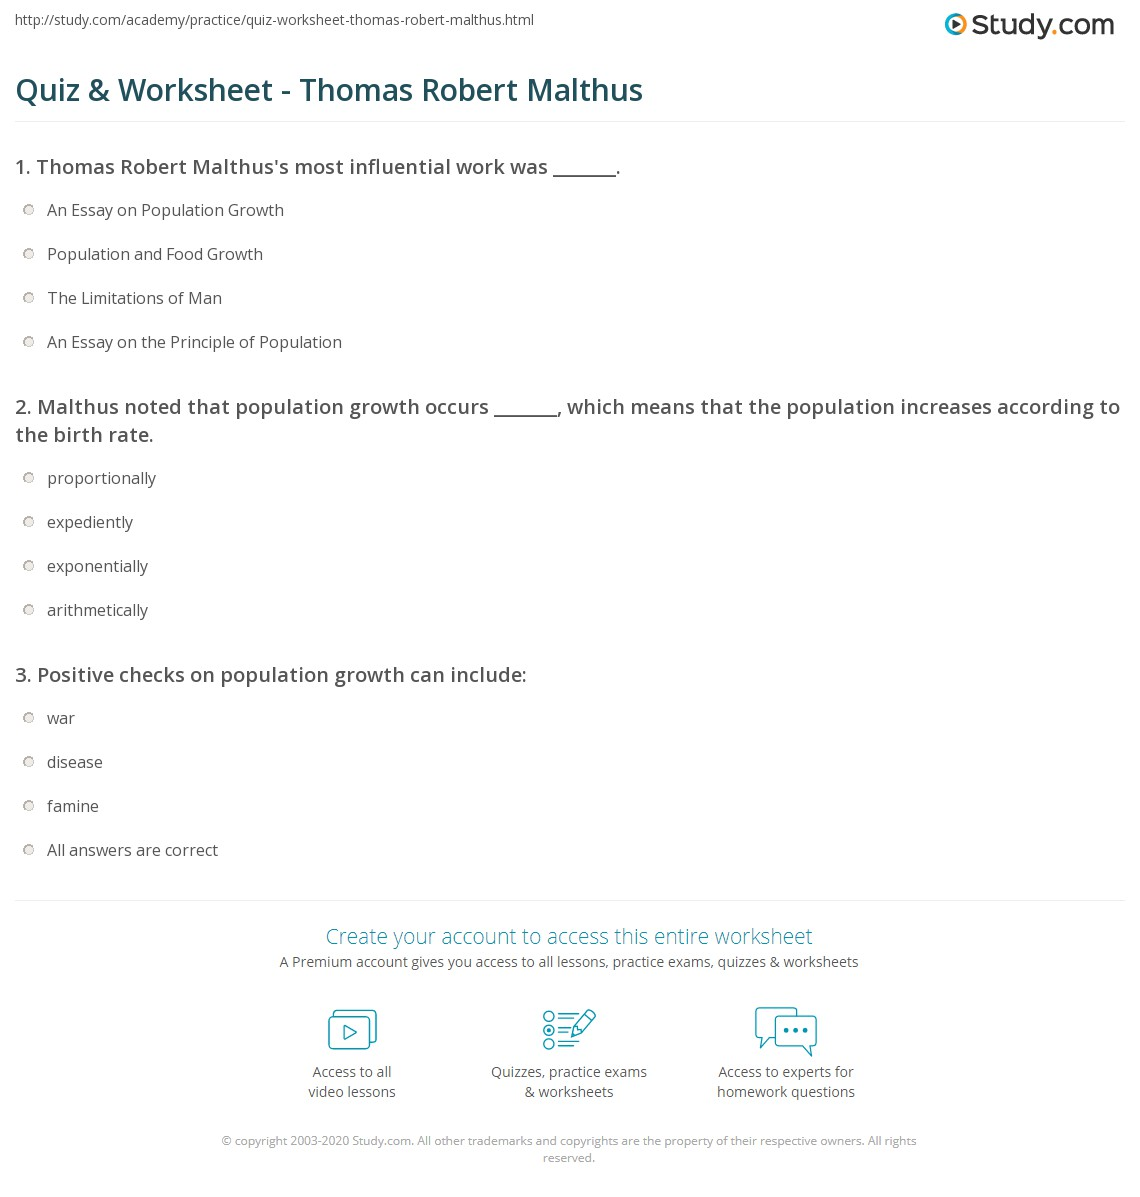 quiz worksheet thomas robert malthus study com malthus noted that population growth occurs which means that the population increases according to the birth rate